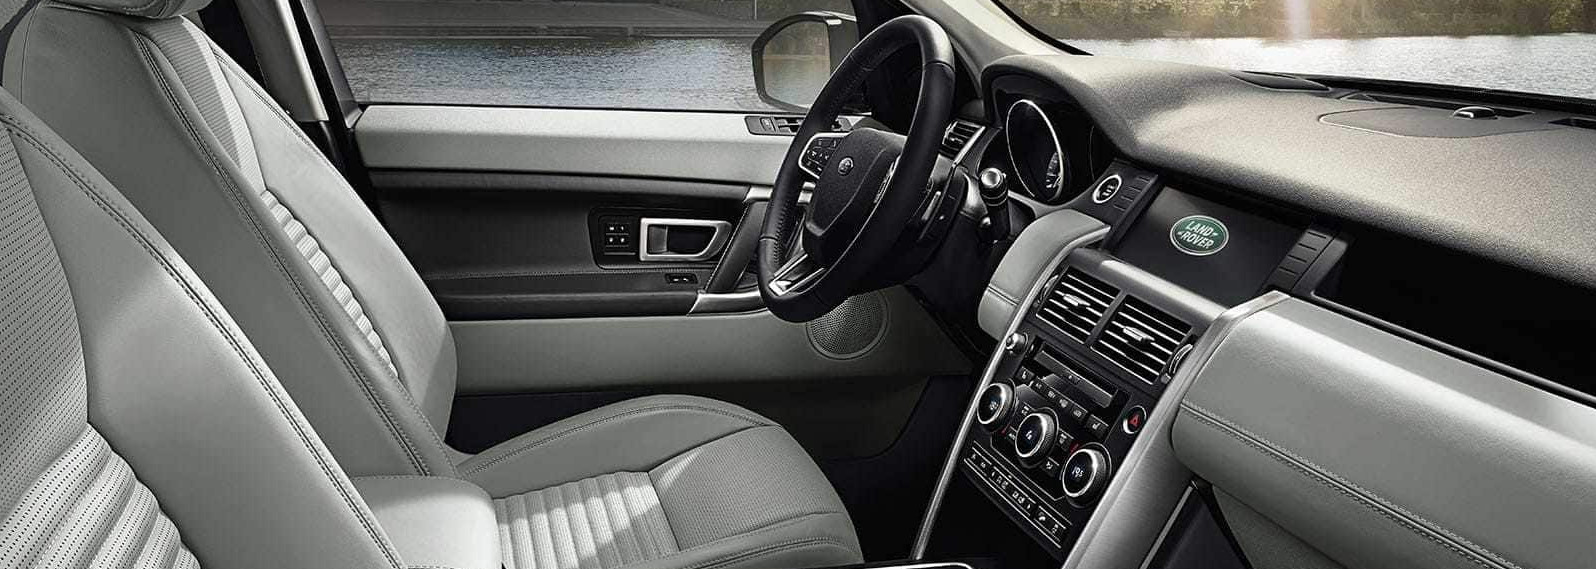 Interior discovery sport